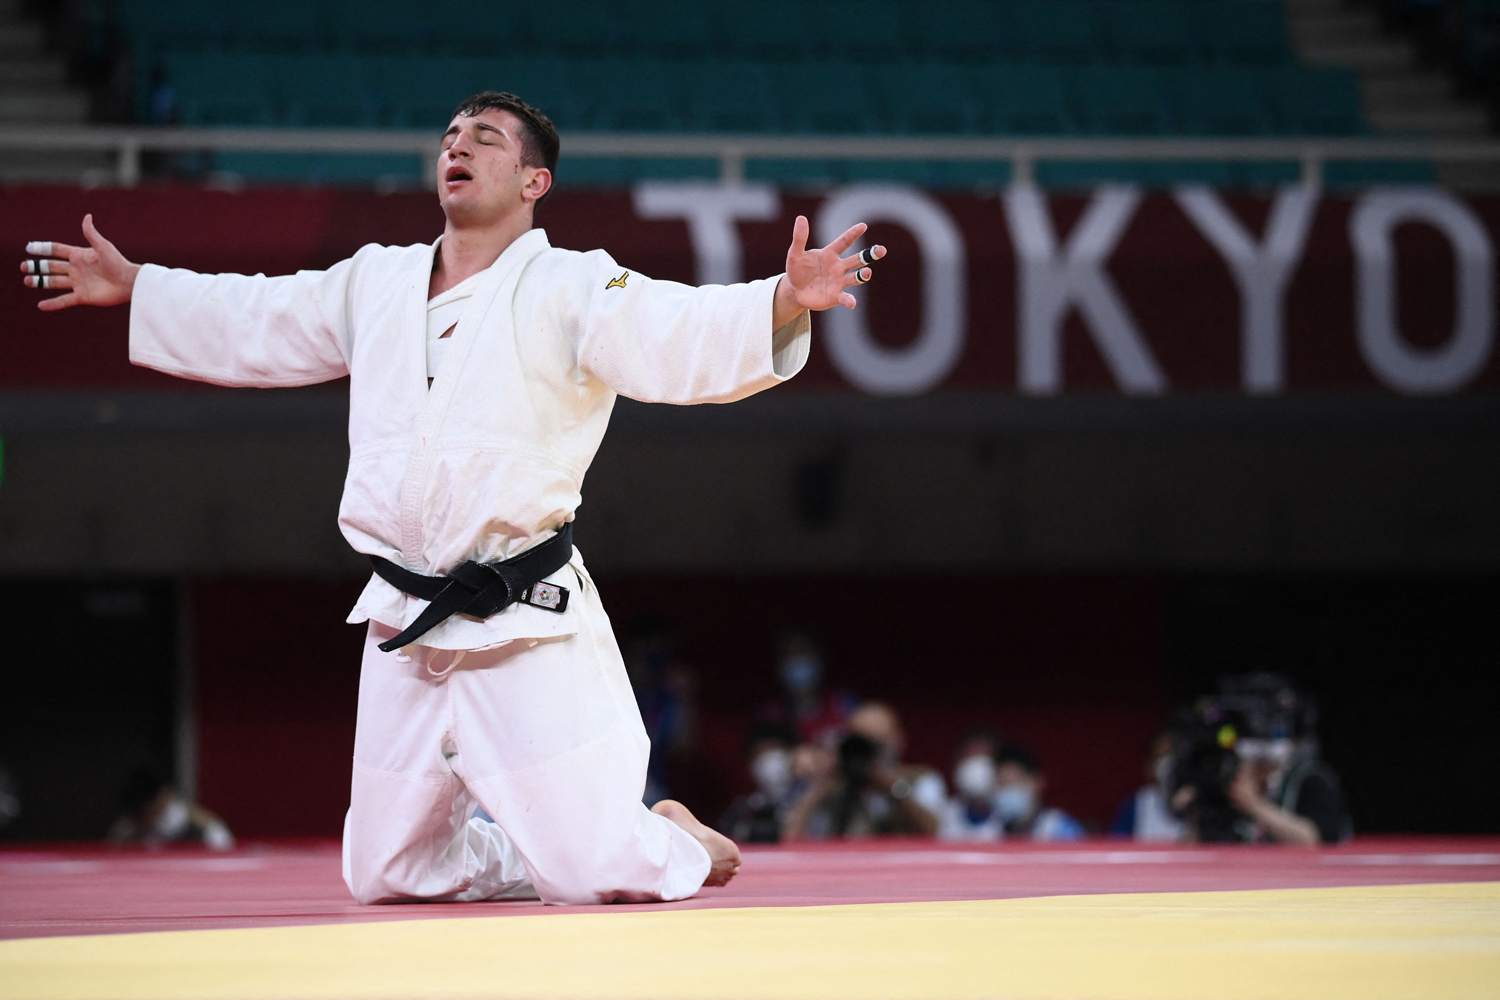 Georgia's Lasha Bekauri celebrates winning the judo men's -90kg gold medal bout against Germany's Eduard Trippel during the Tokyo 2020 Olympic Games